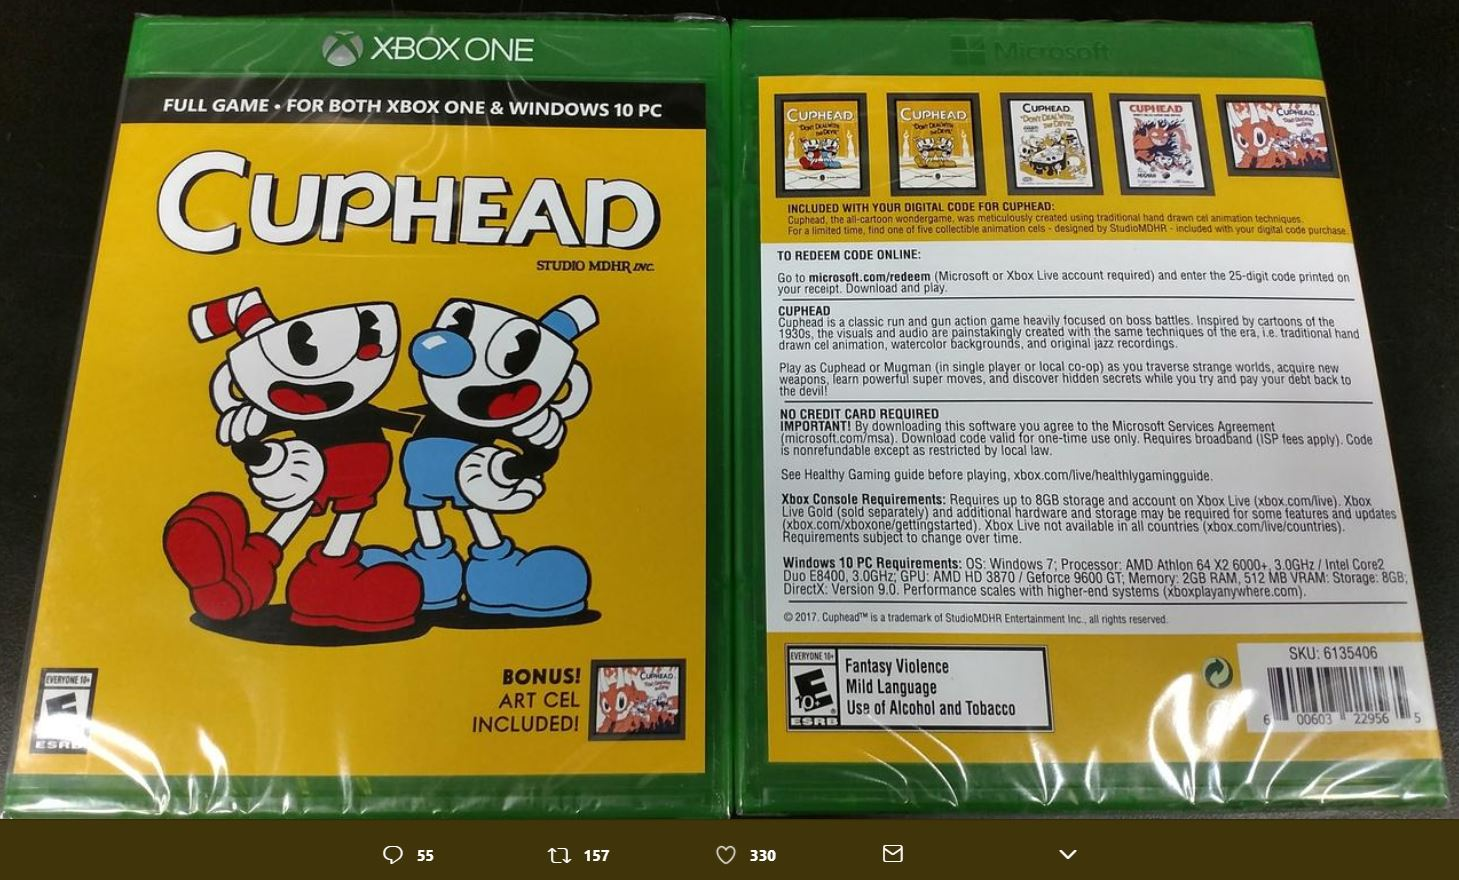 Cuphead will release a boxed version that contains a digital code